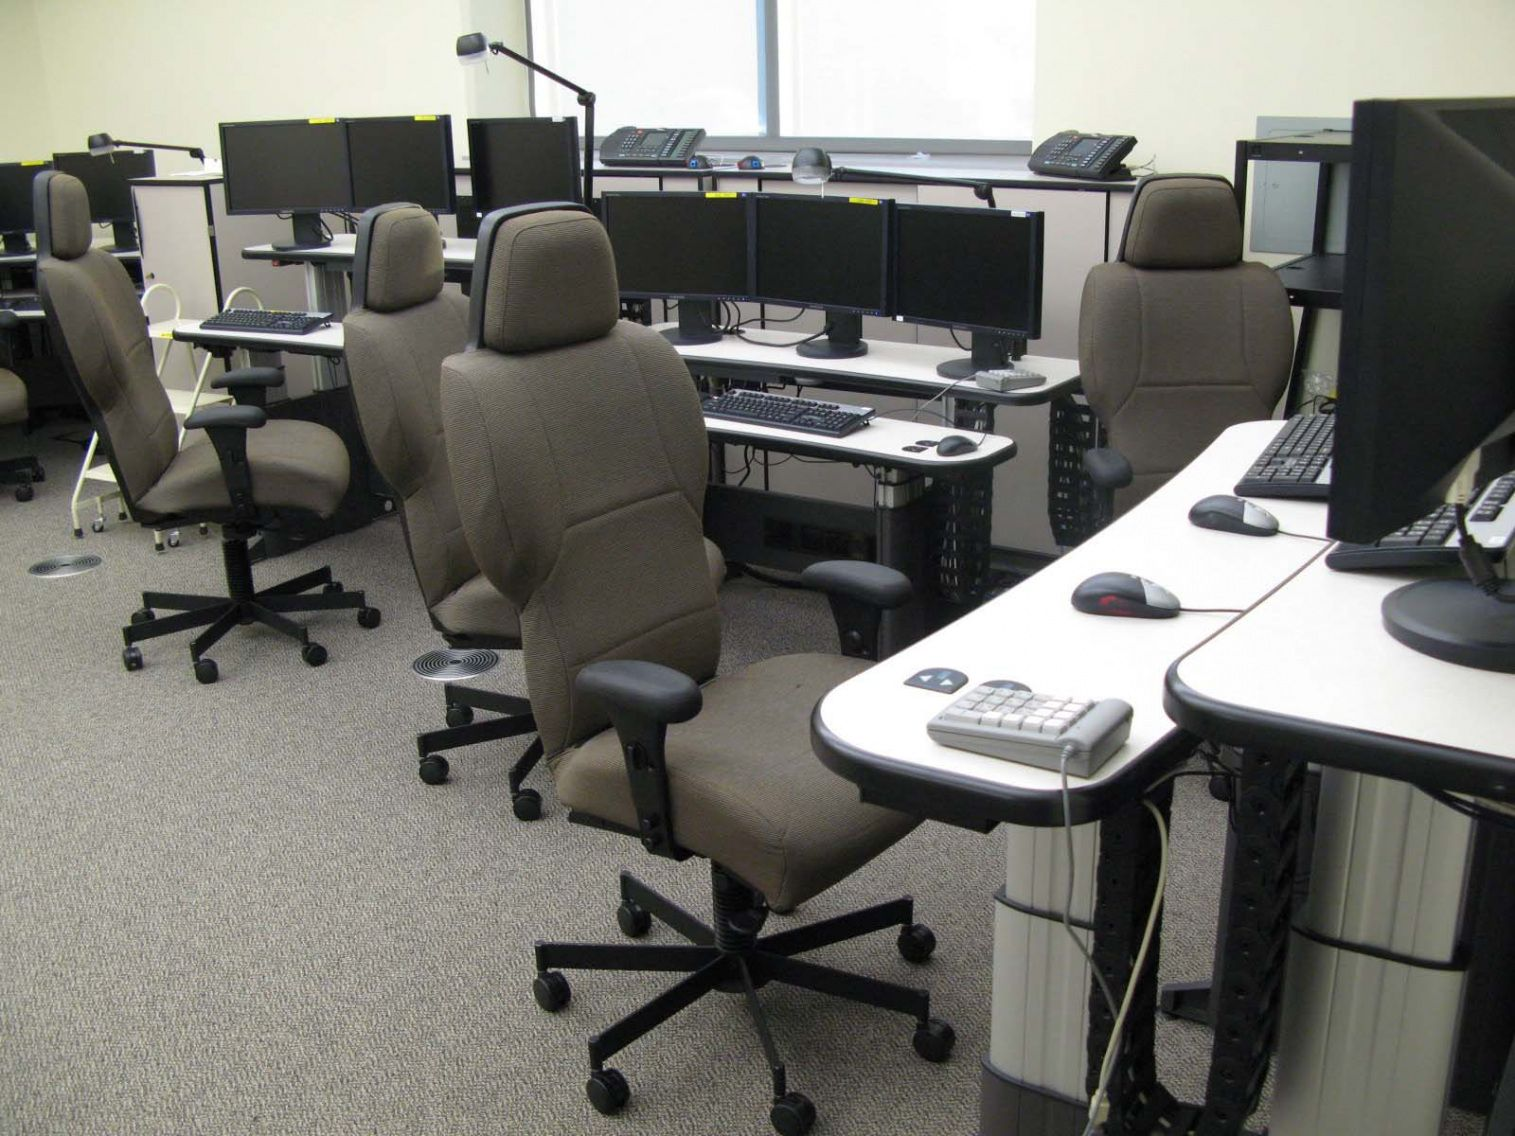 24 7 Office Chairs - Contemporary Home Office Furniture Check more ...